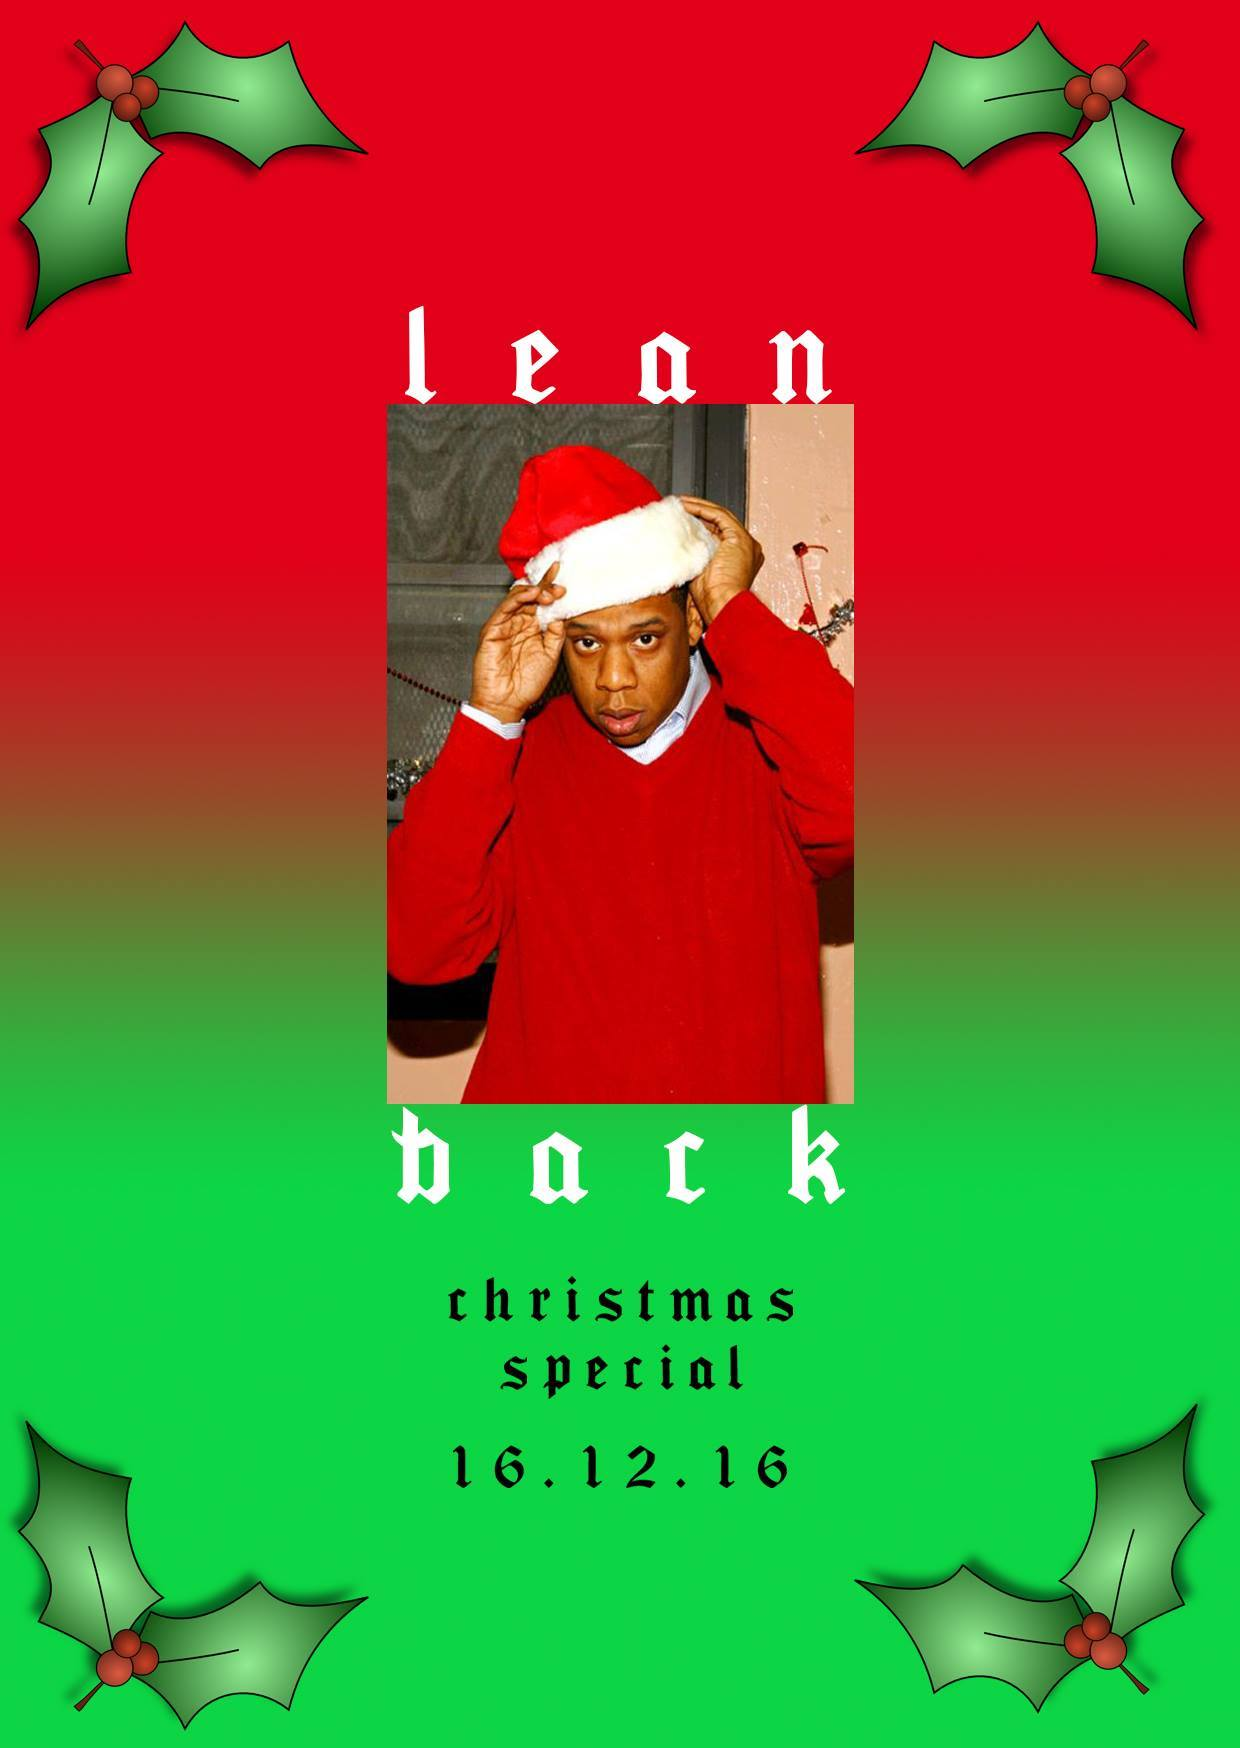 LEAN BACK IS BACK    Strictly 2000's Hip Hop and RnB... All. Night.    ***LUDACRISTMAS SPECIAL***    FREE b4 10pm     £5 after all night - bring ID    DJs   oh annie oh  &  William Michael  & friends